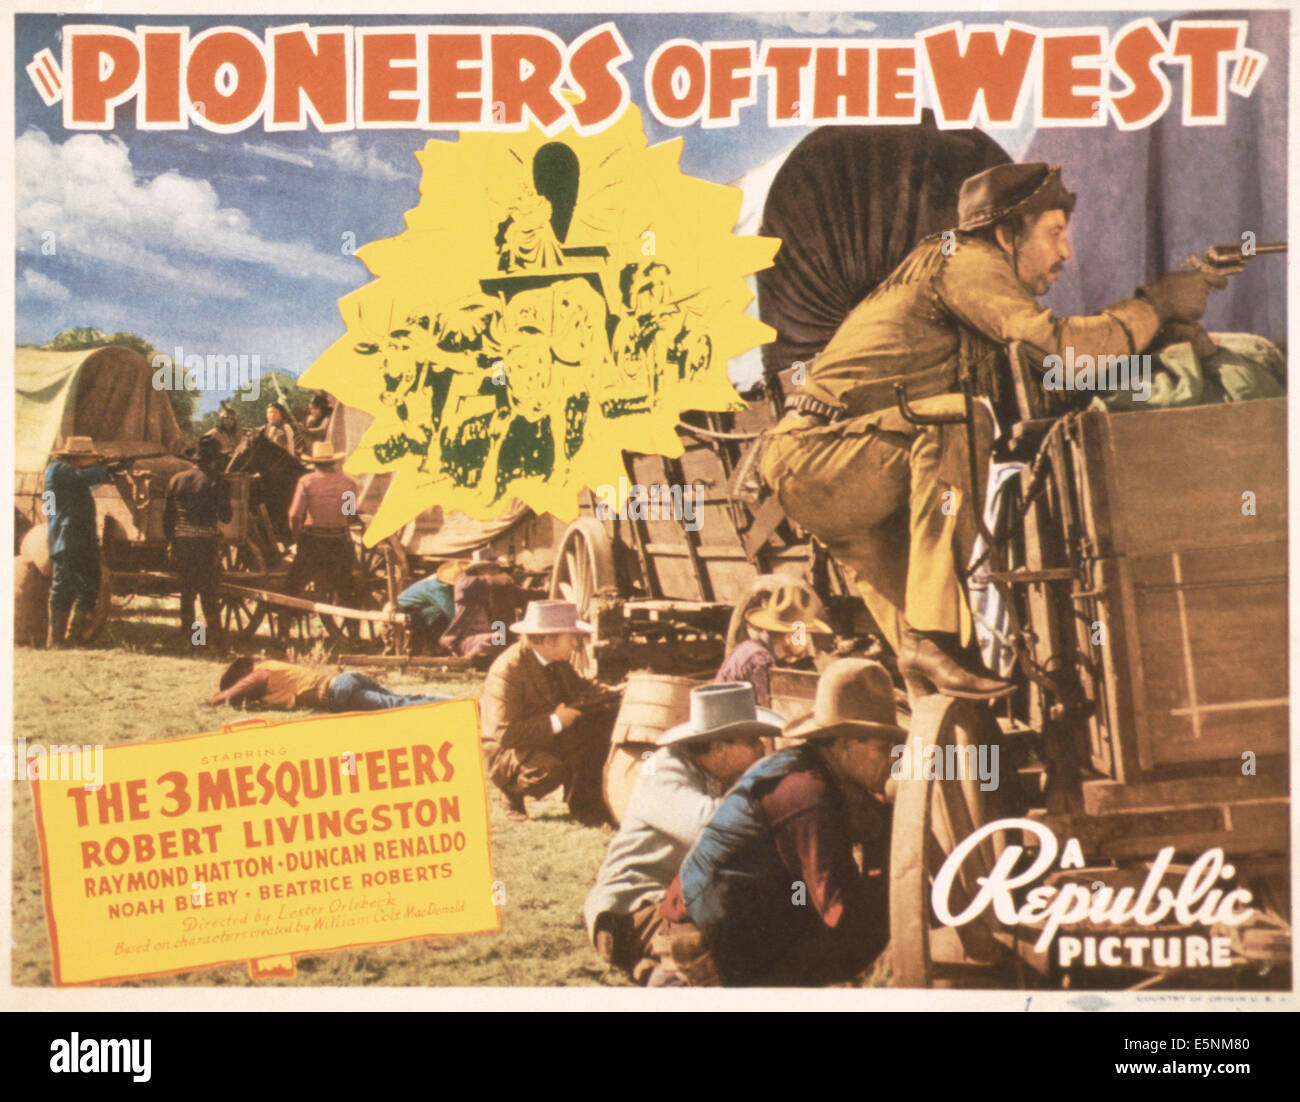 PIONEERS OF THE WEST, US lobbycard, 1940 - Stock Image